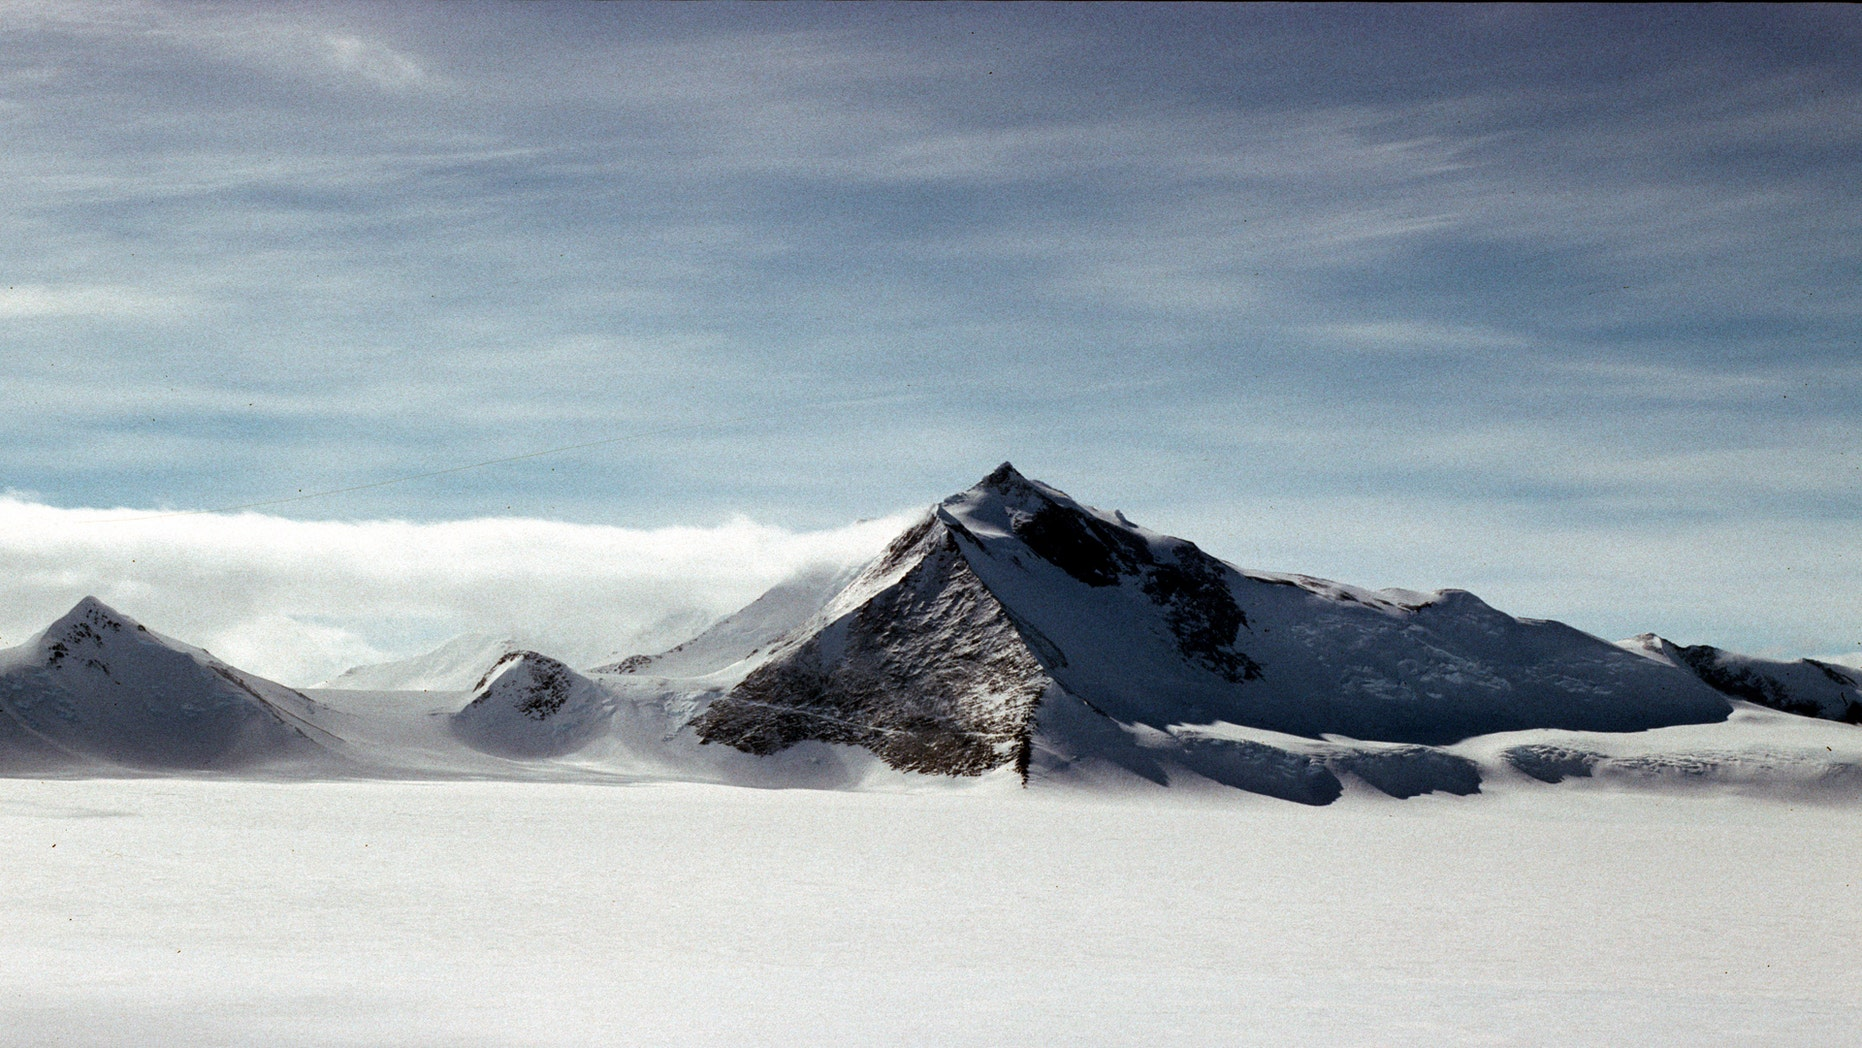 A view of Mount Hope from the East. (Photo Credit: Alan Vaughan/British Antarctic Survey)